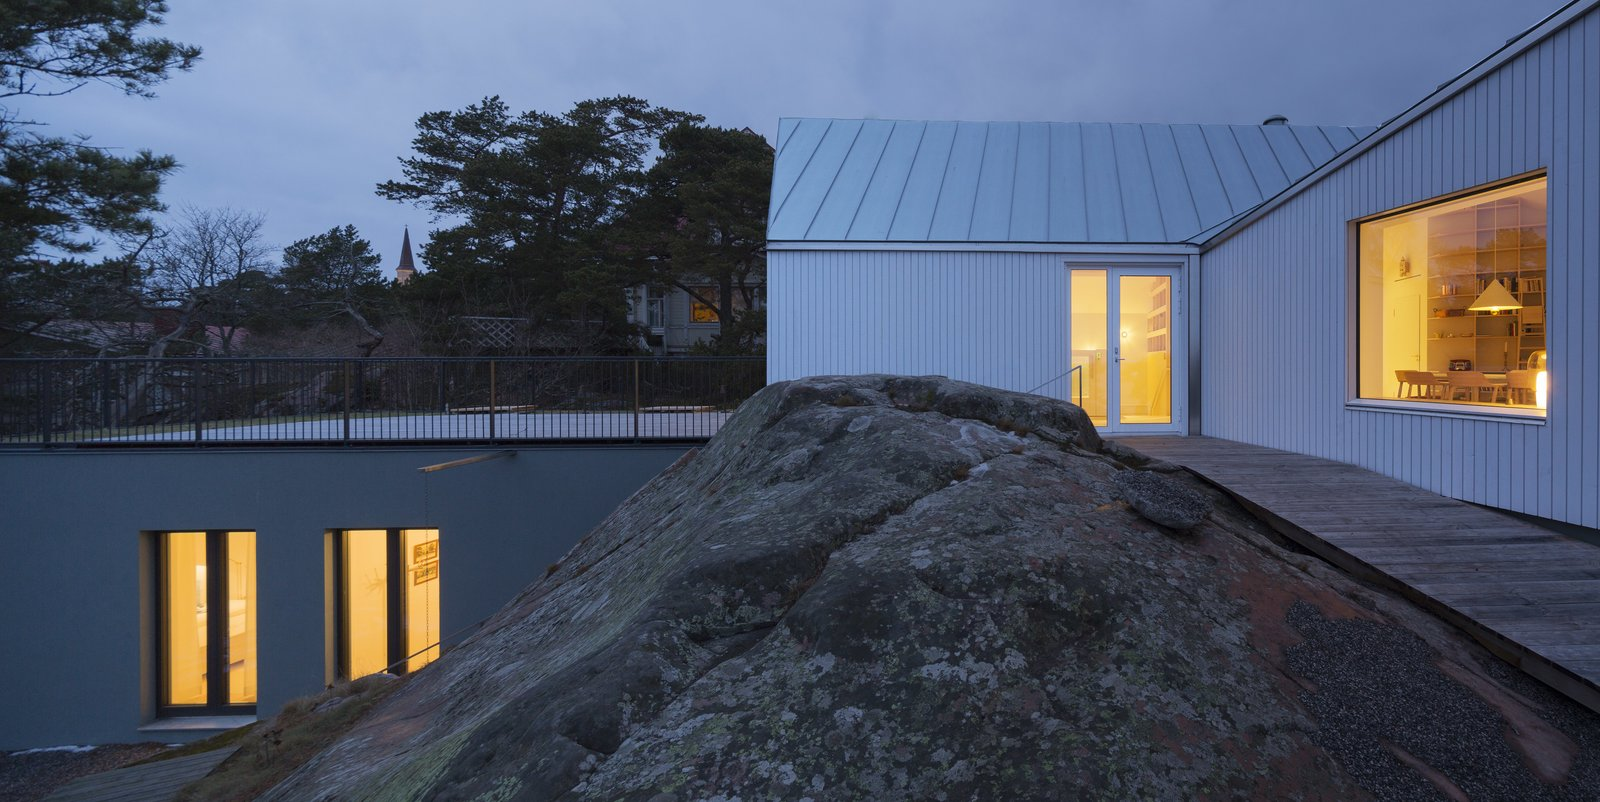 Outdoor  Photo 5 of 12 in A Modern Finnish Villa That Grows Out of a Seaside Cliff